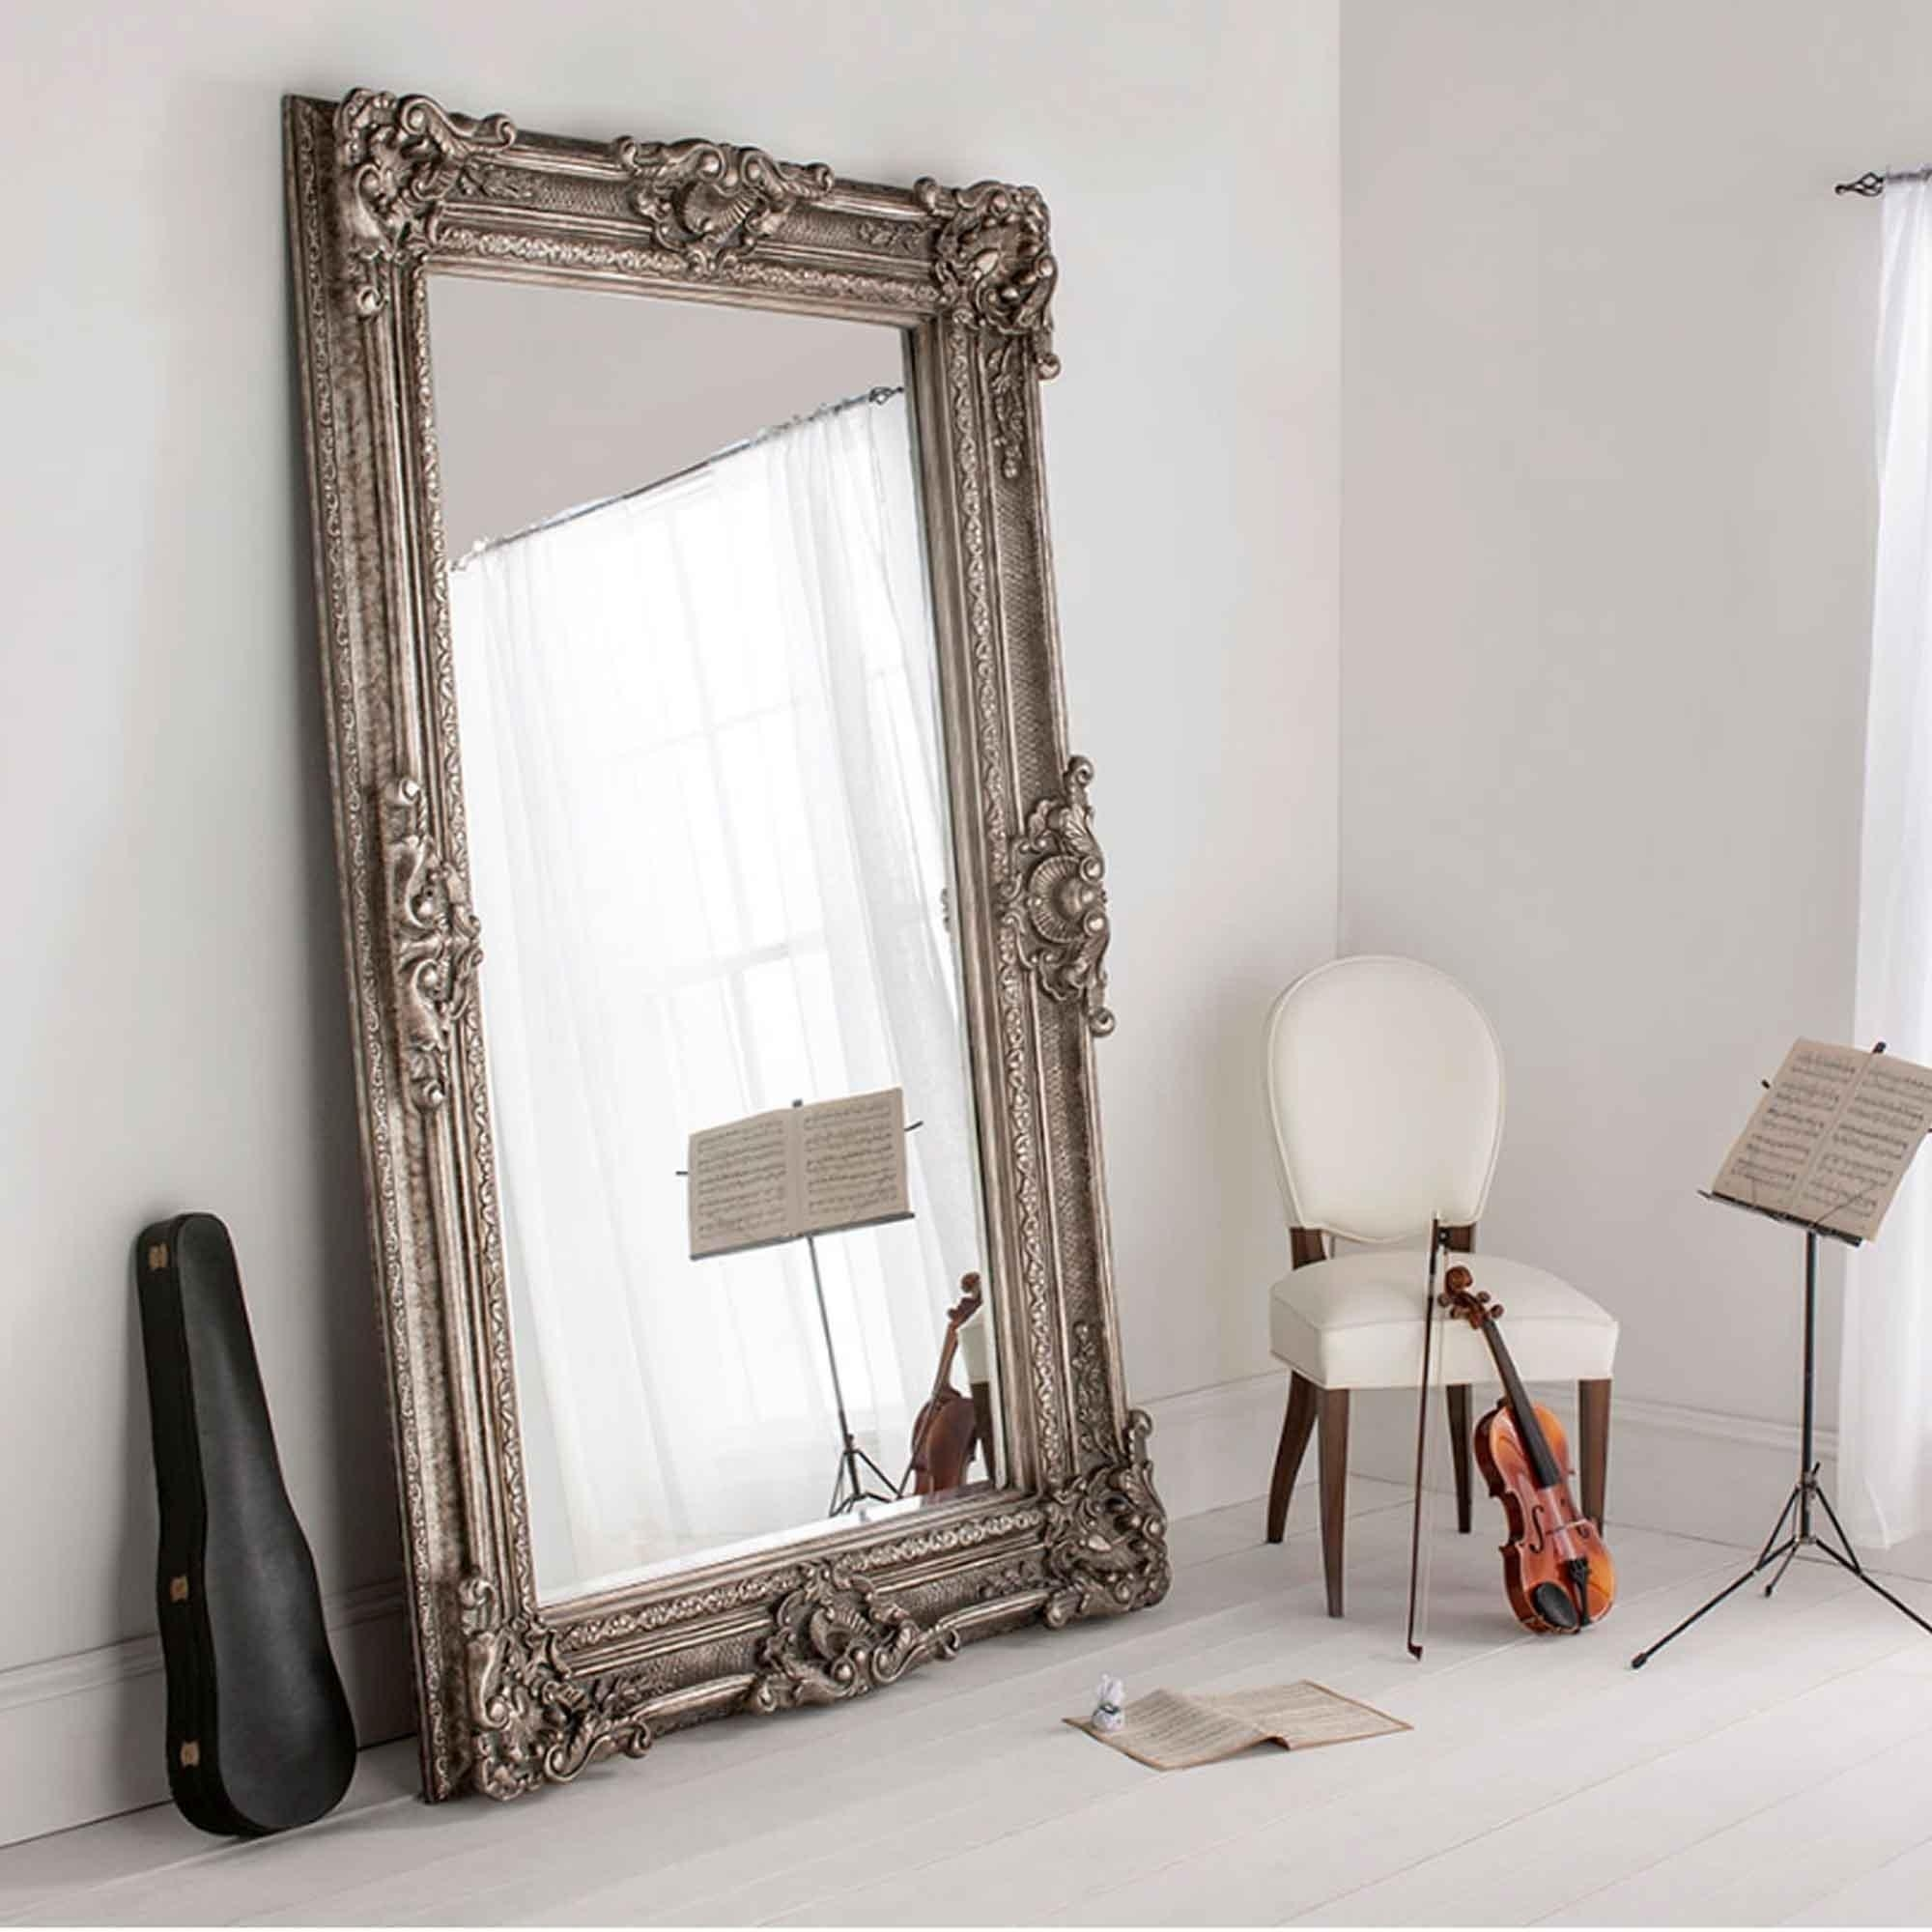 French Floor Standing Mirrors | Extra Large Mirrors | Floor Mirrors Intended For Cream Floor Standing Mirror (Image 10 of 20)